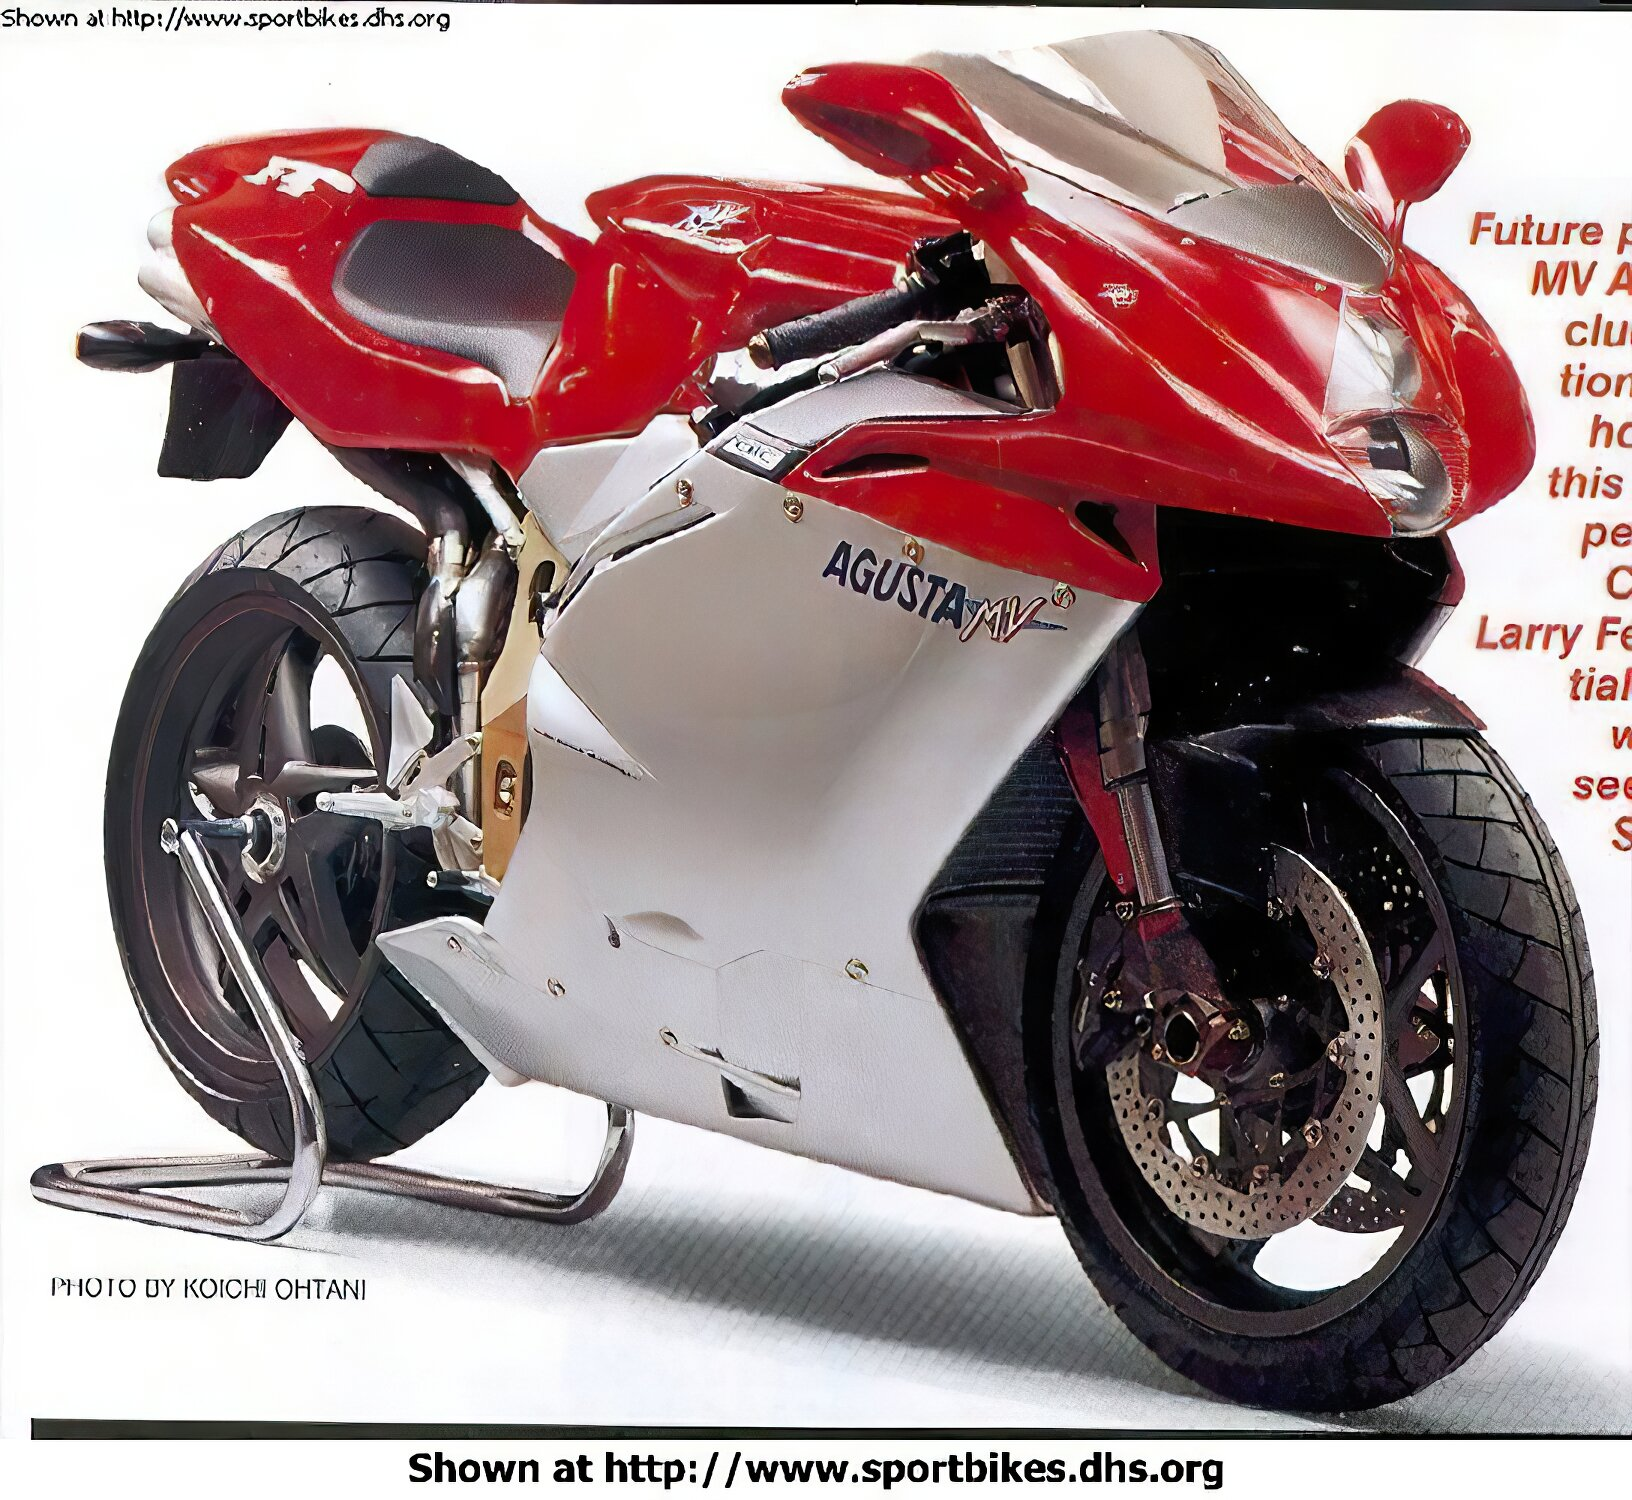 MV Agusta (all models) - ID: 202